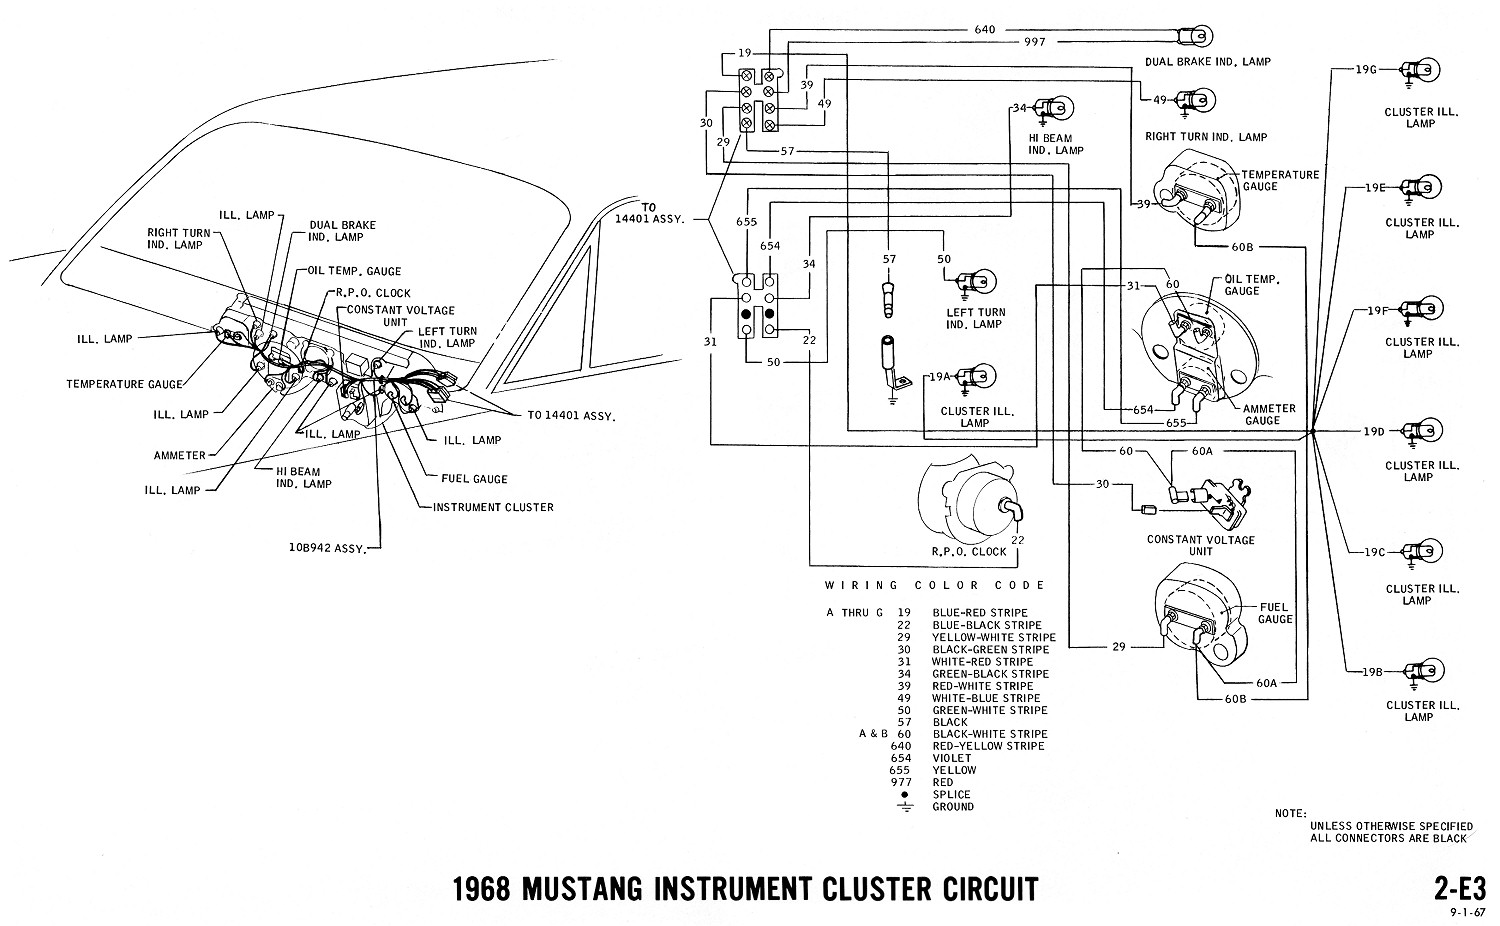 1968 Mustang Turn Signal Switch Diagram Wiring Schematic Starting 7 Way Trailer Plug Contrail Triler Diagrams Evolving Software Rh Peterfranza Com